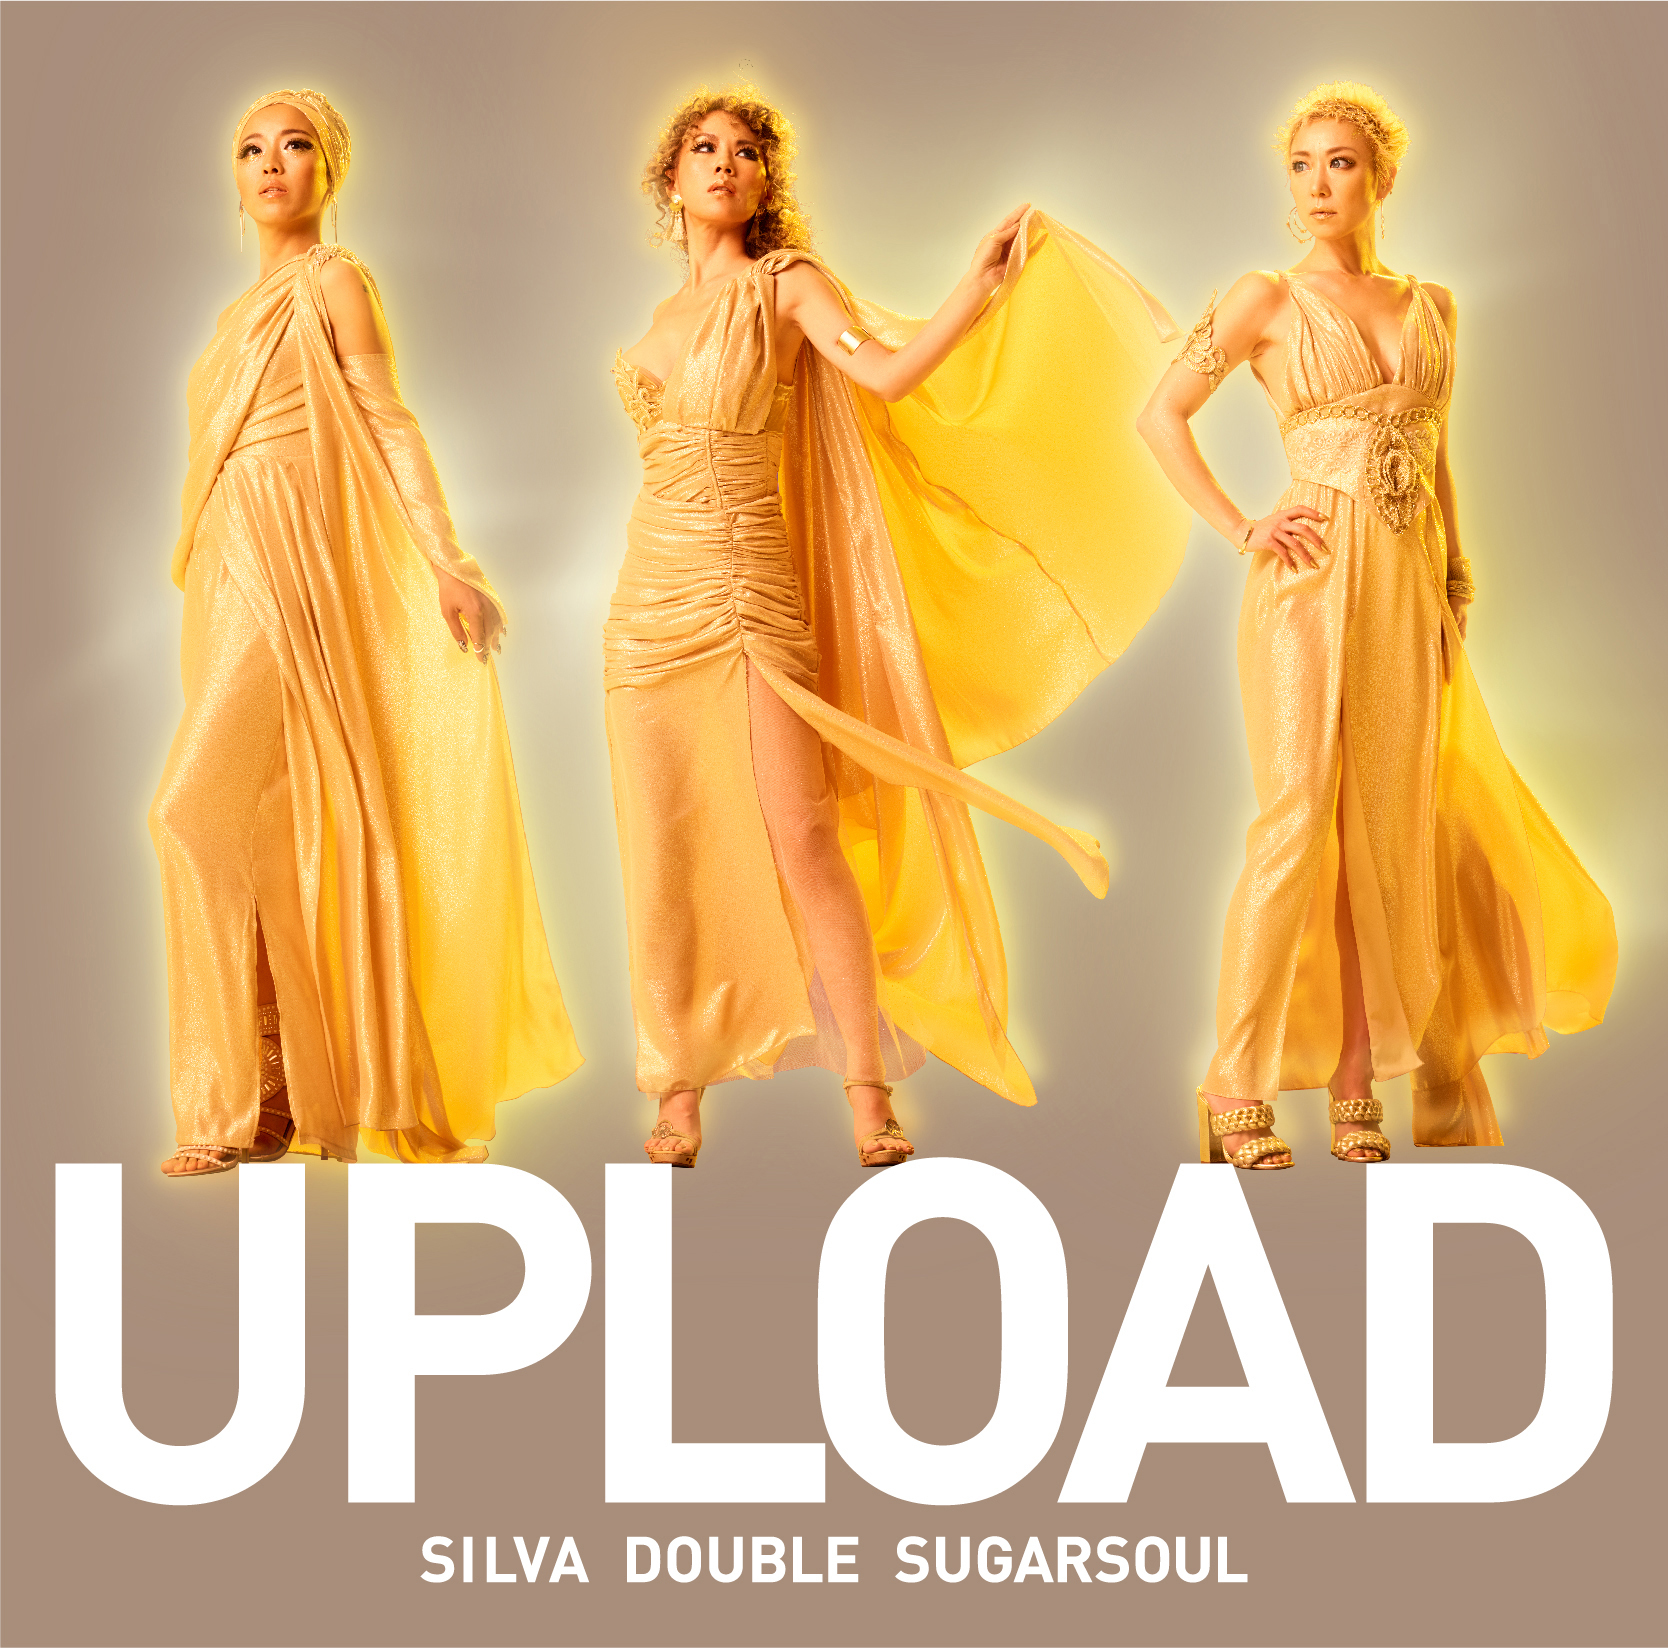 20th Anniversary EP「UPLOAD」 SILVA DOUBLE SUGARSOUL通常盤